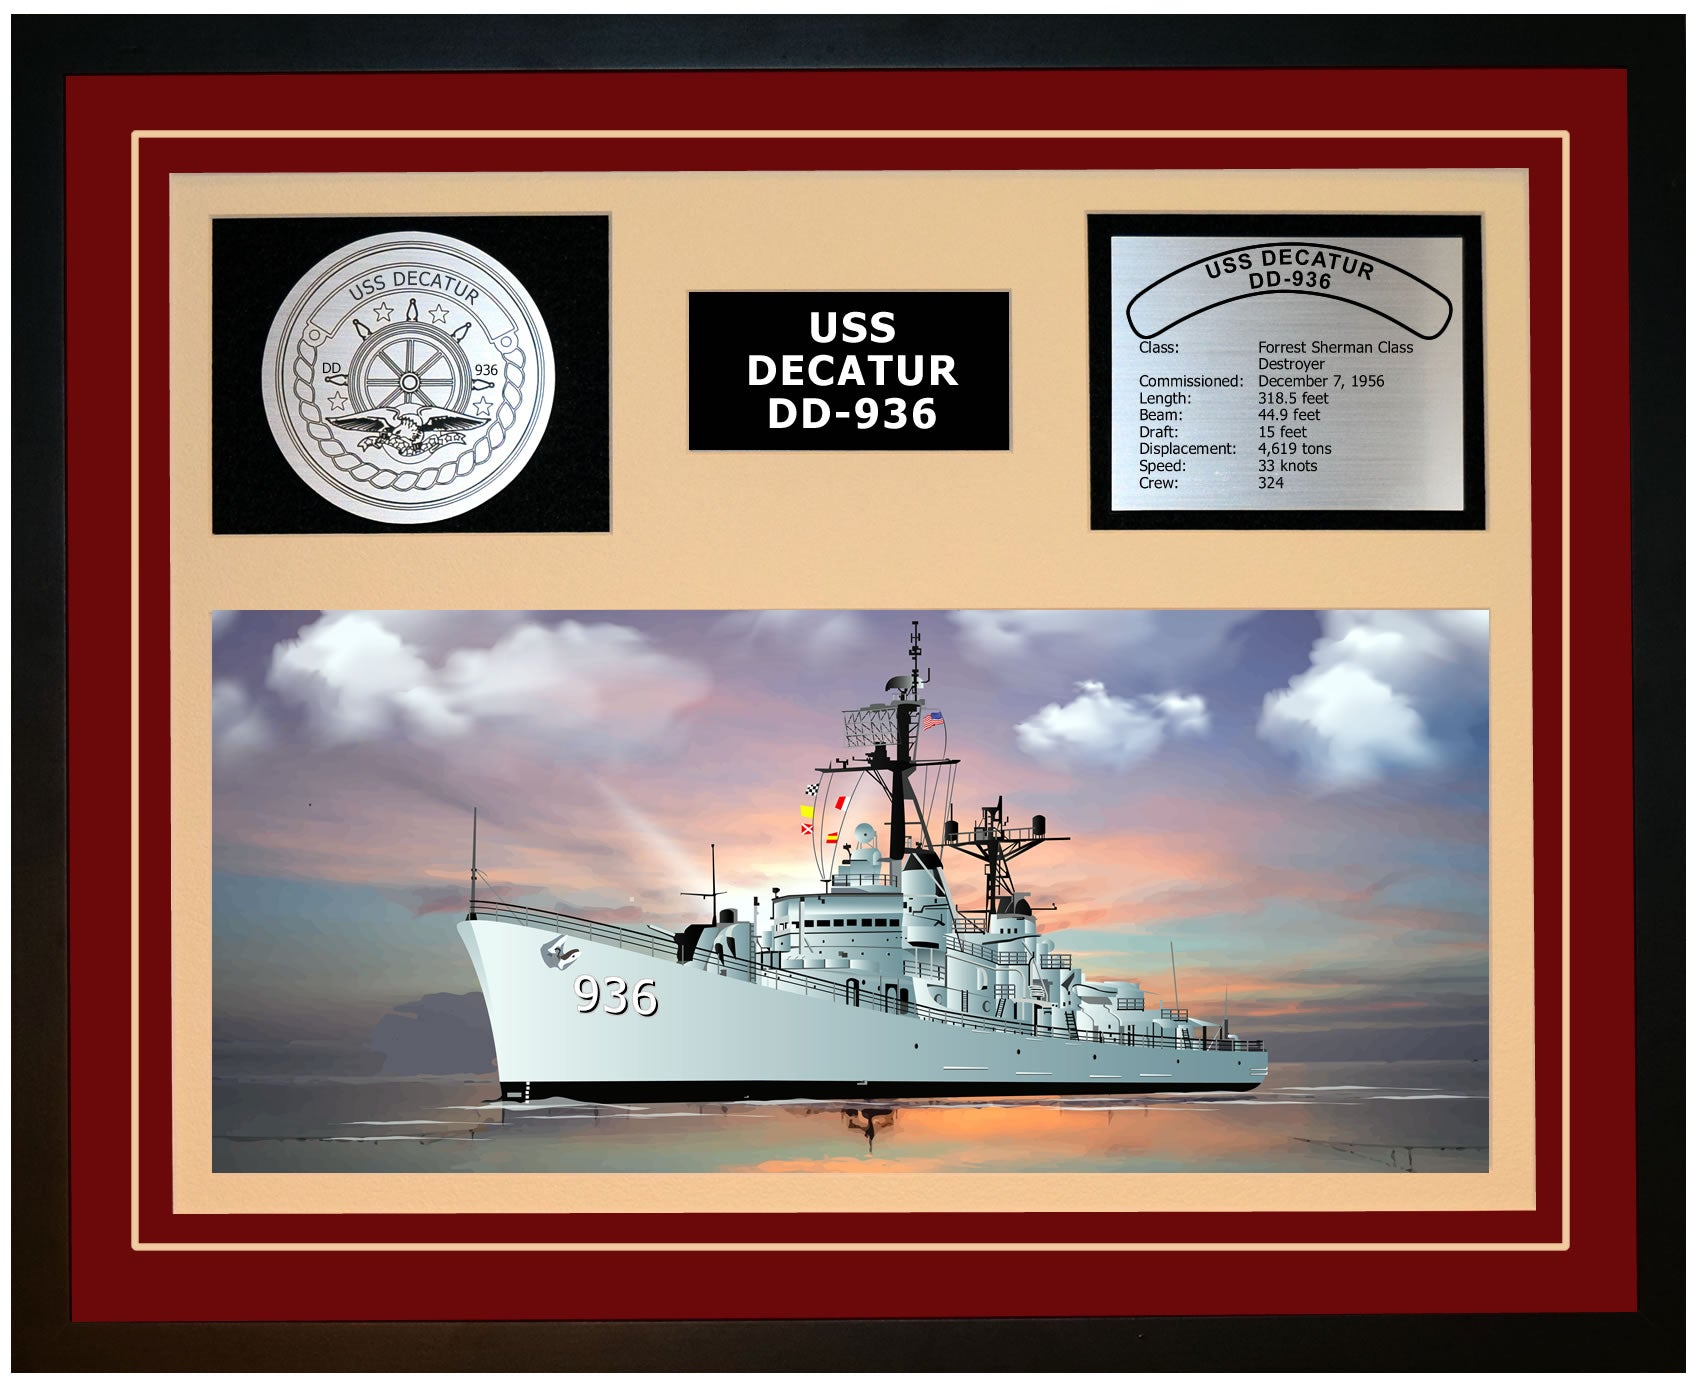 USS DECATUR DD-936 Framed Navy Ship Display Burgundy